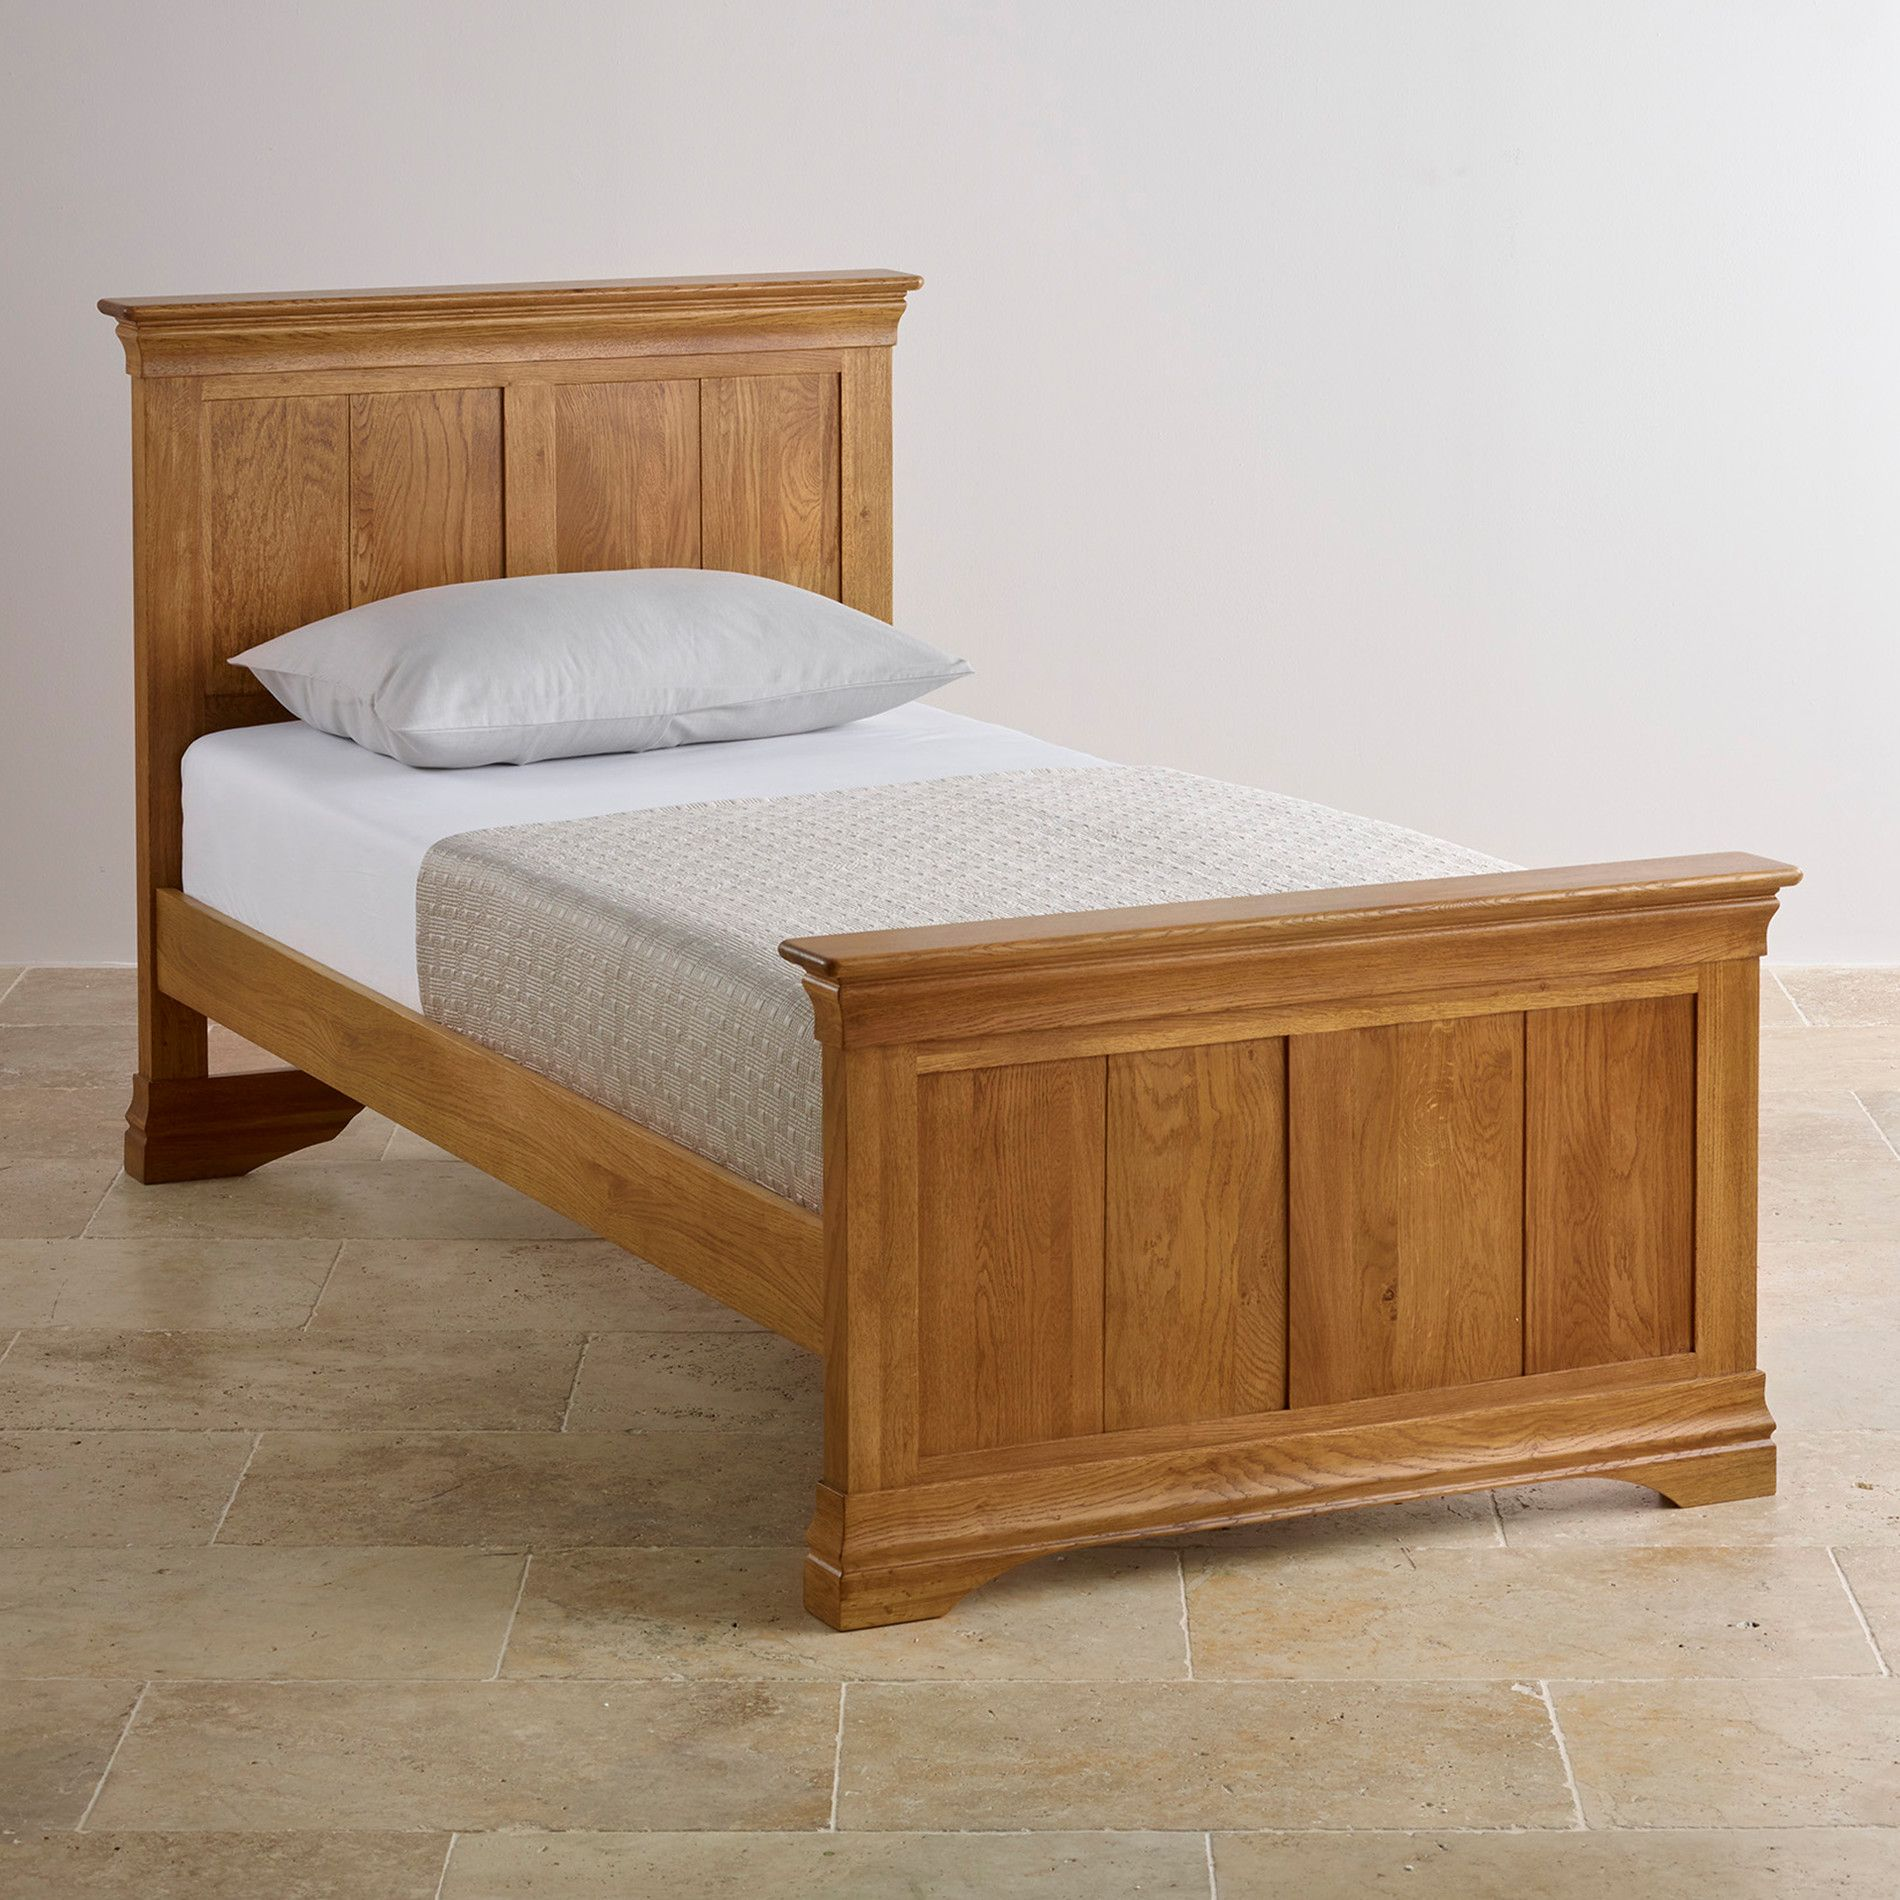 french farmhouse styling single bed oak furniture land paris all